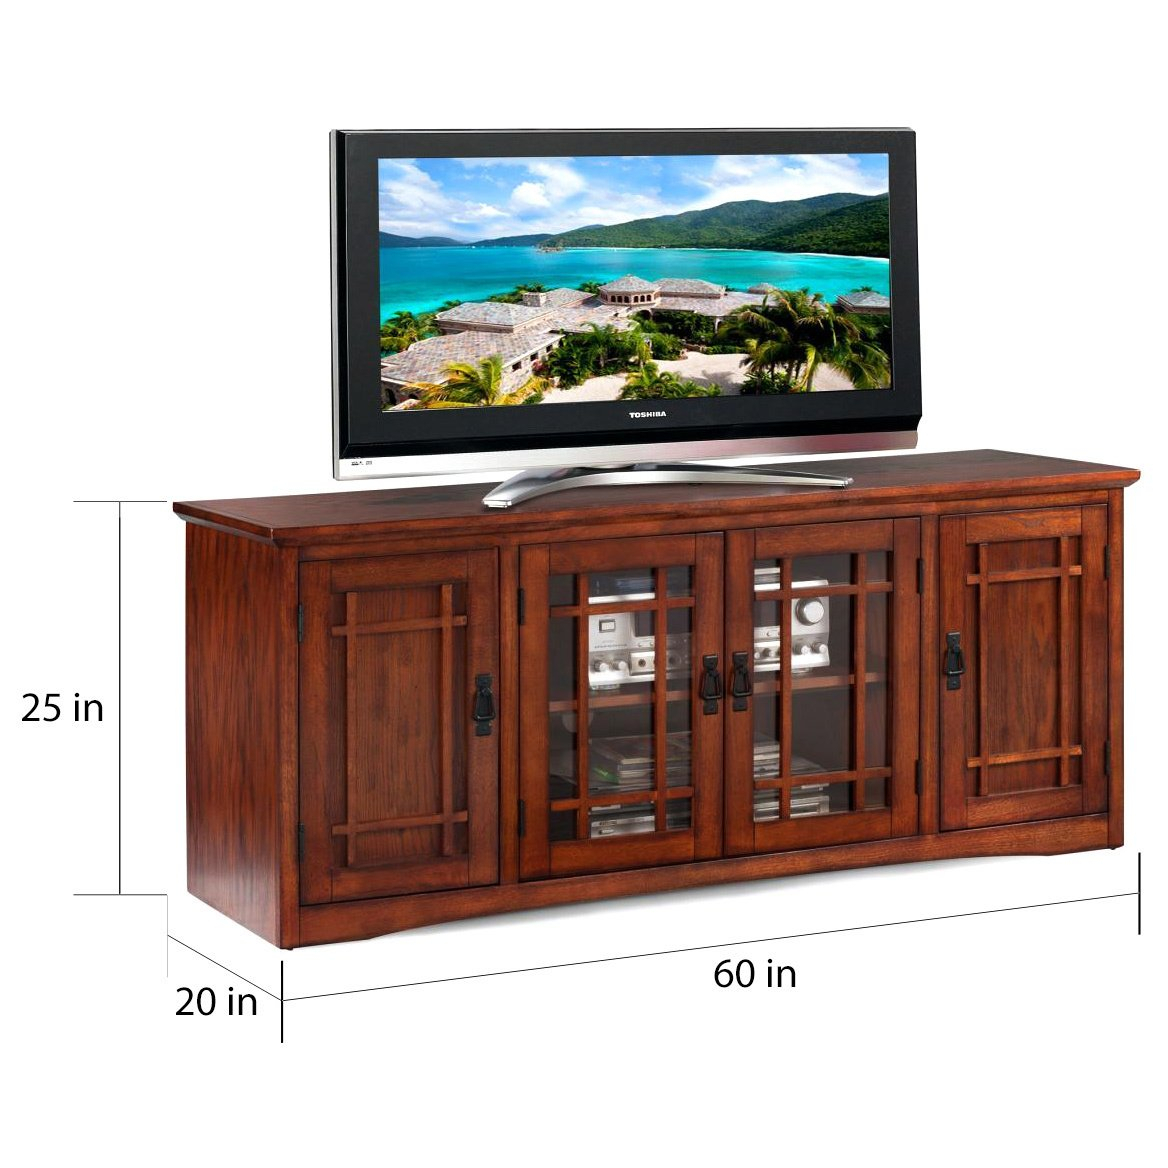 Shop Mission Oak Hardwood 60 Inch Tv Stand – Free Shipping Today Inside Laurent 70 Inch Tv Stands (View 10 of 30)